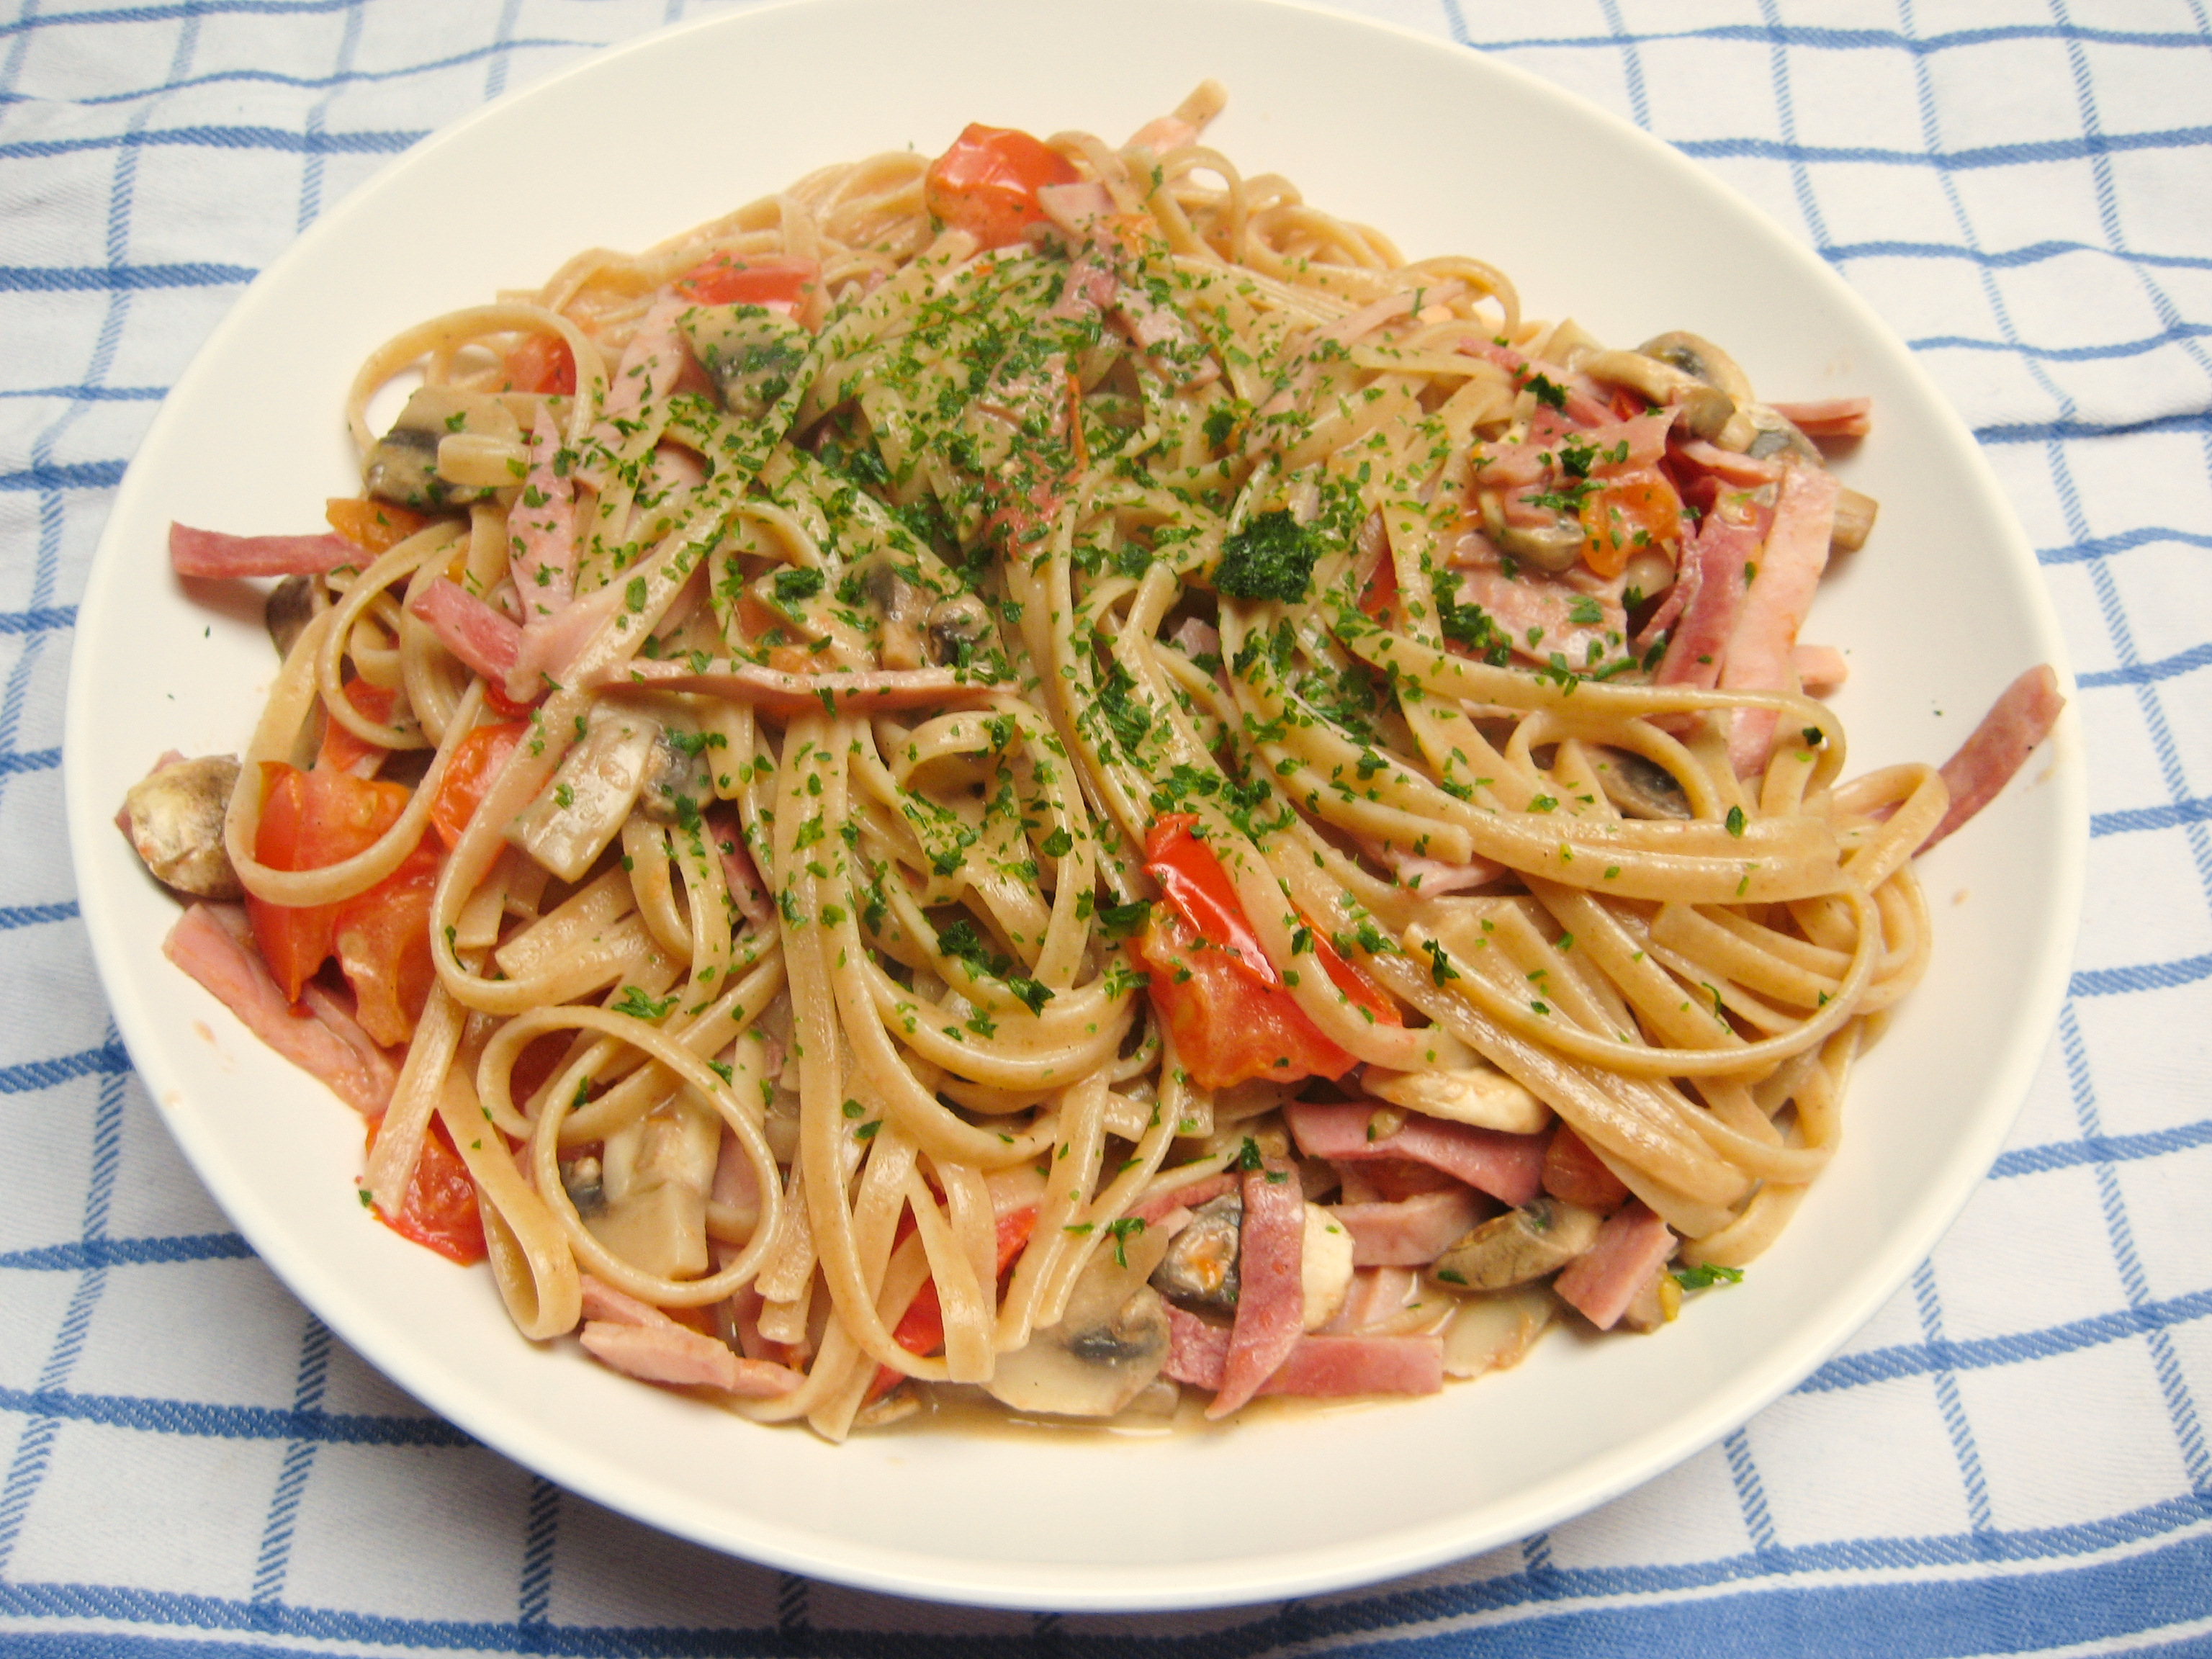 Tagliatelle with tomatoes, ham & mushrooms